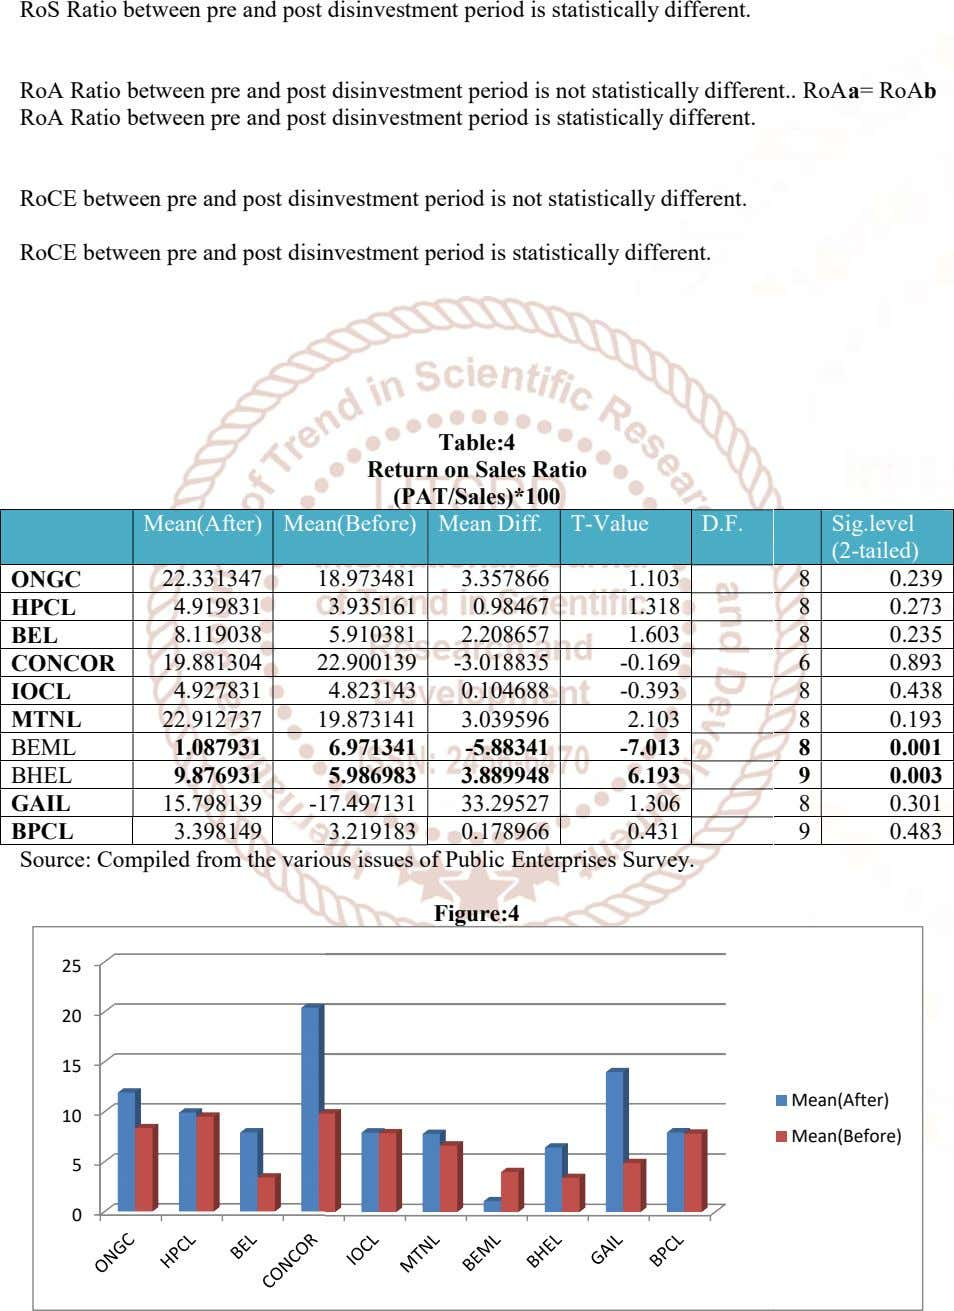 RoS Ratio between pre and post disinvestment period is statistically different. RoA Ratio between pre